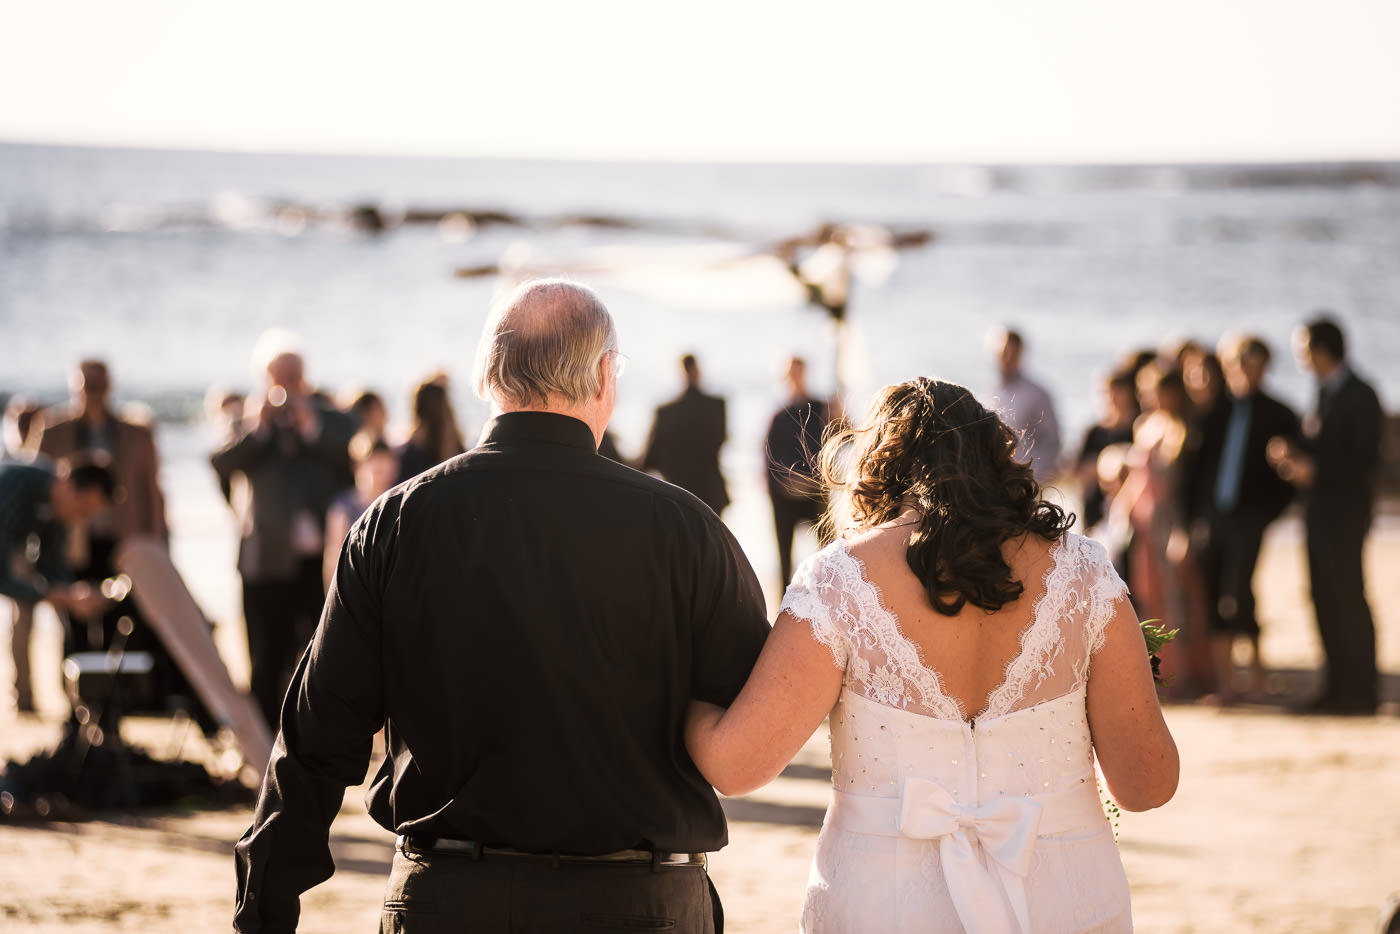 Bride is overcome with emotion as she walks across the sand to her wedding ceremony.